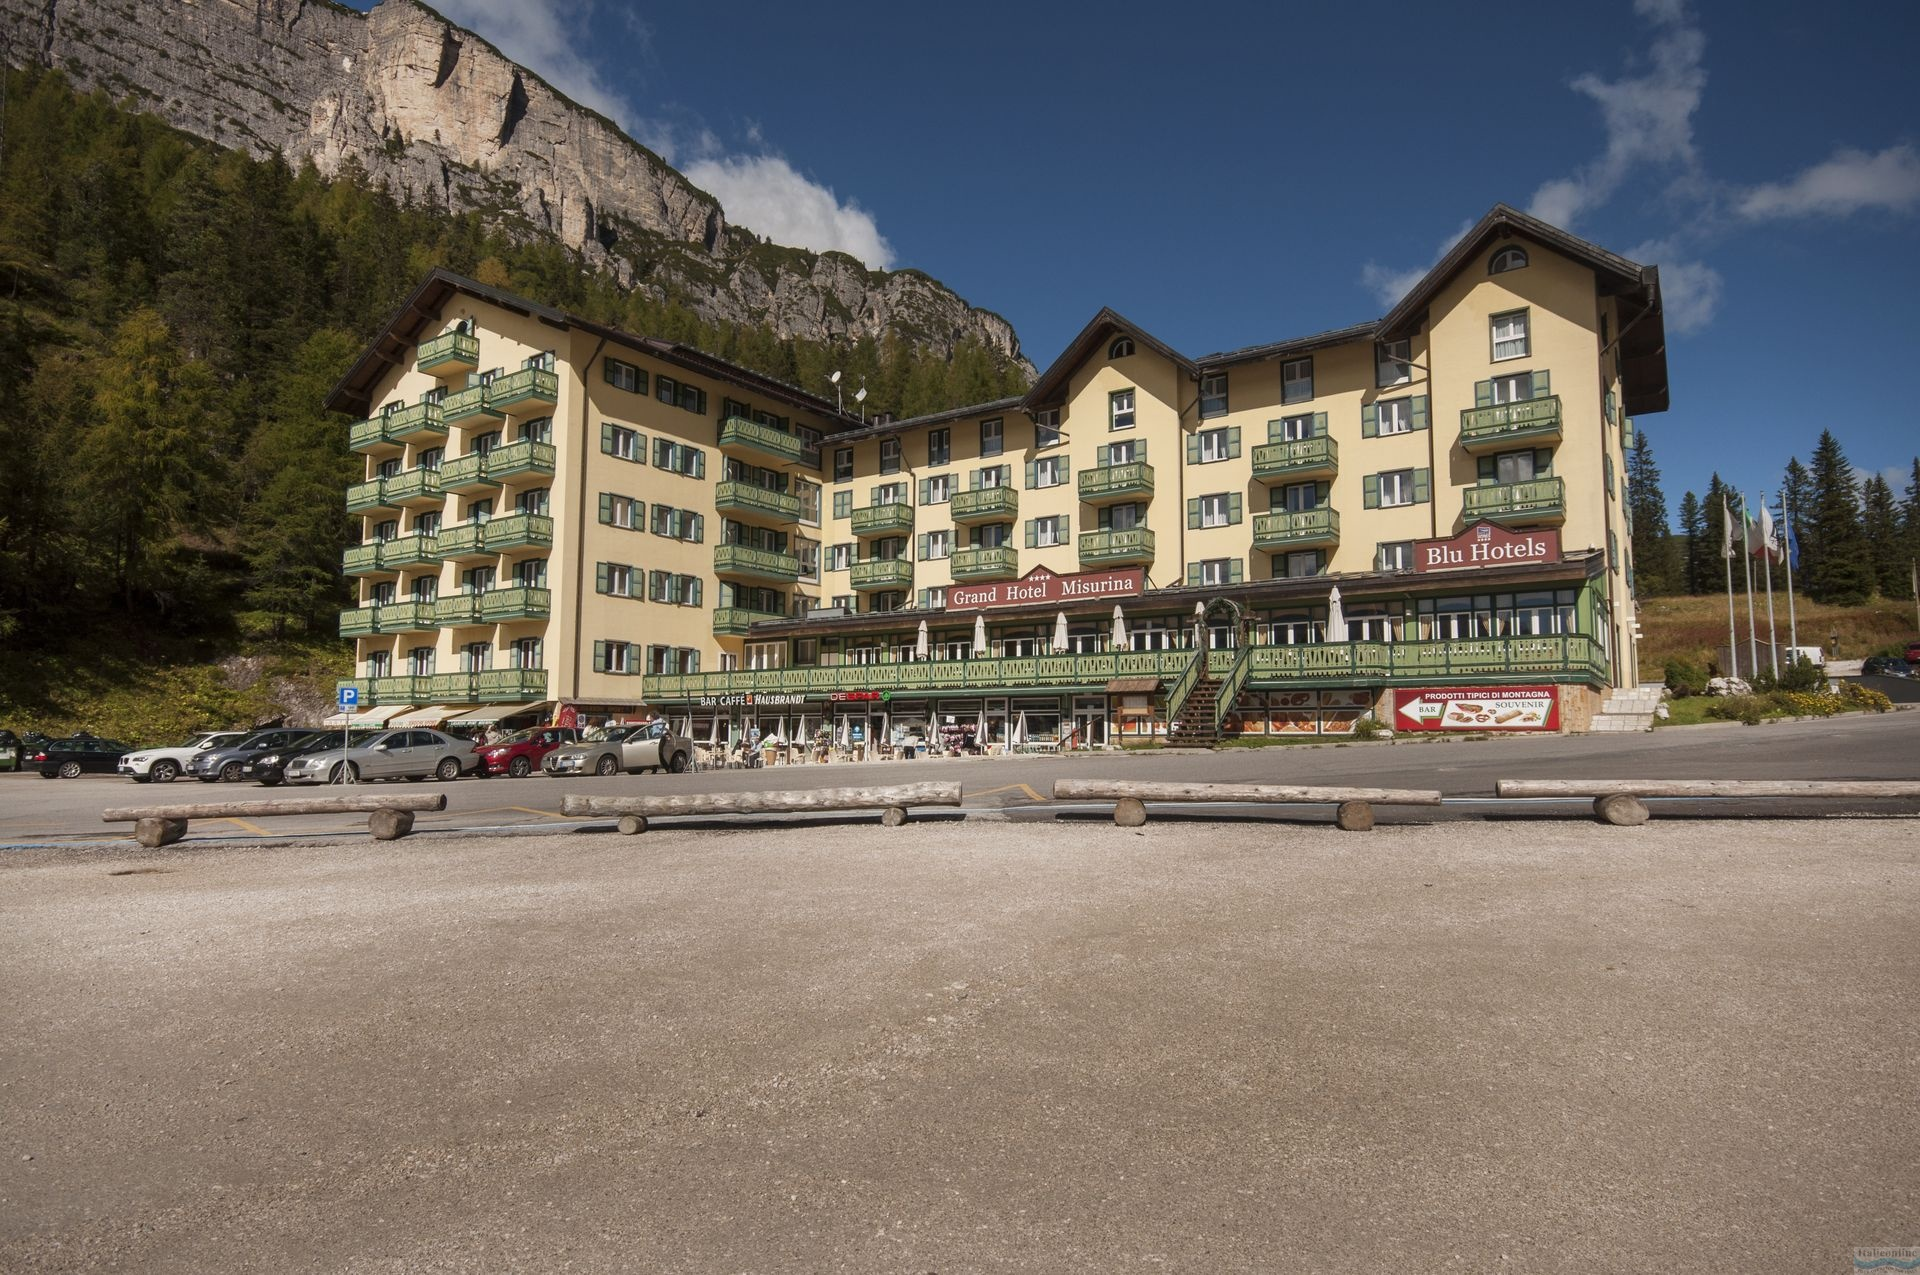 Grand Hotel Misurina